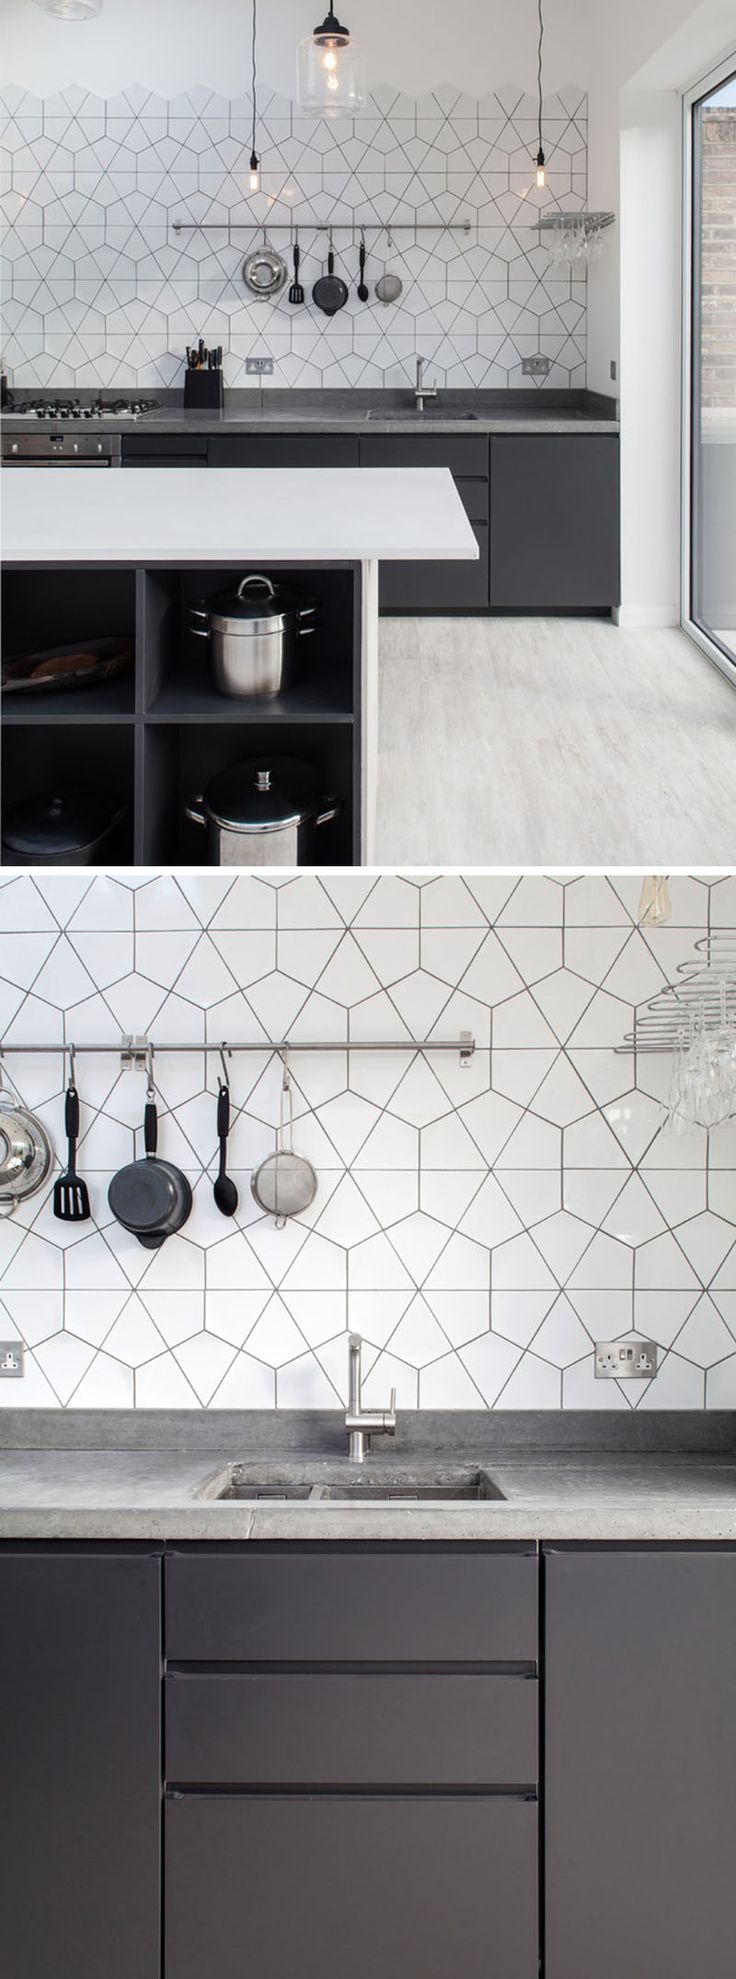 Best 25 Grout Colors Ideas On Pinterest Subway Tile White Subway Tiles And Grey Grout